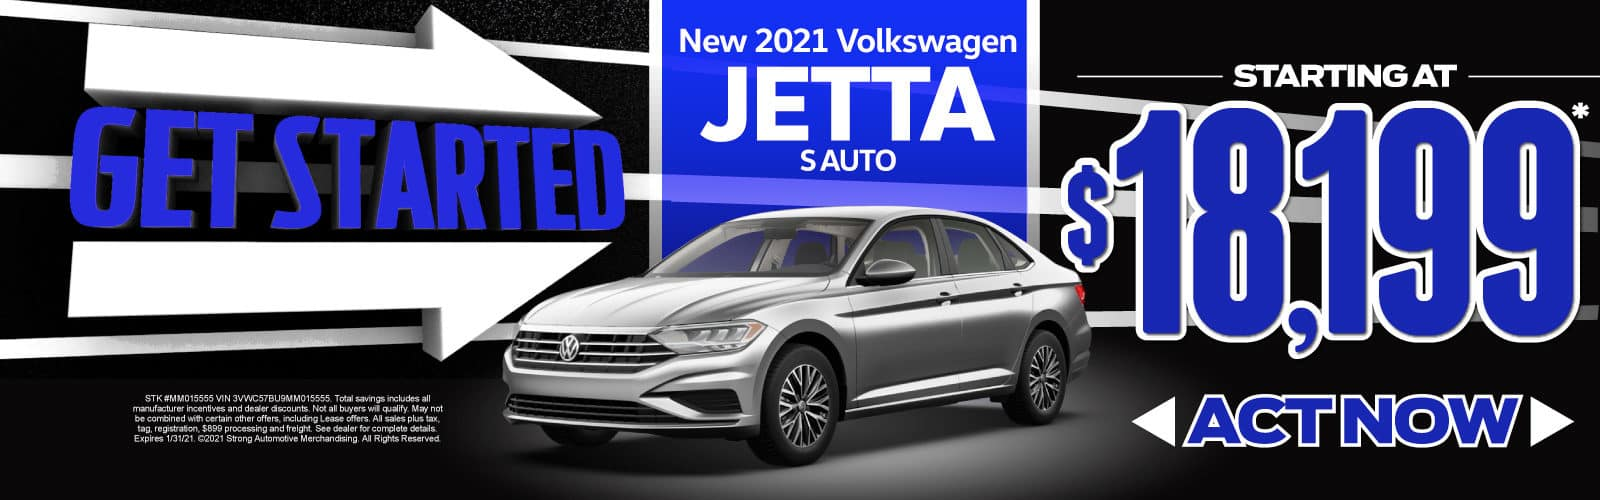 New 2021 VW Jetta - Starting at $18,199 - Act Now